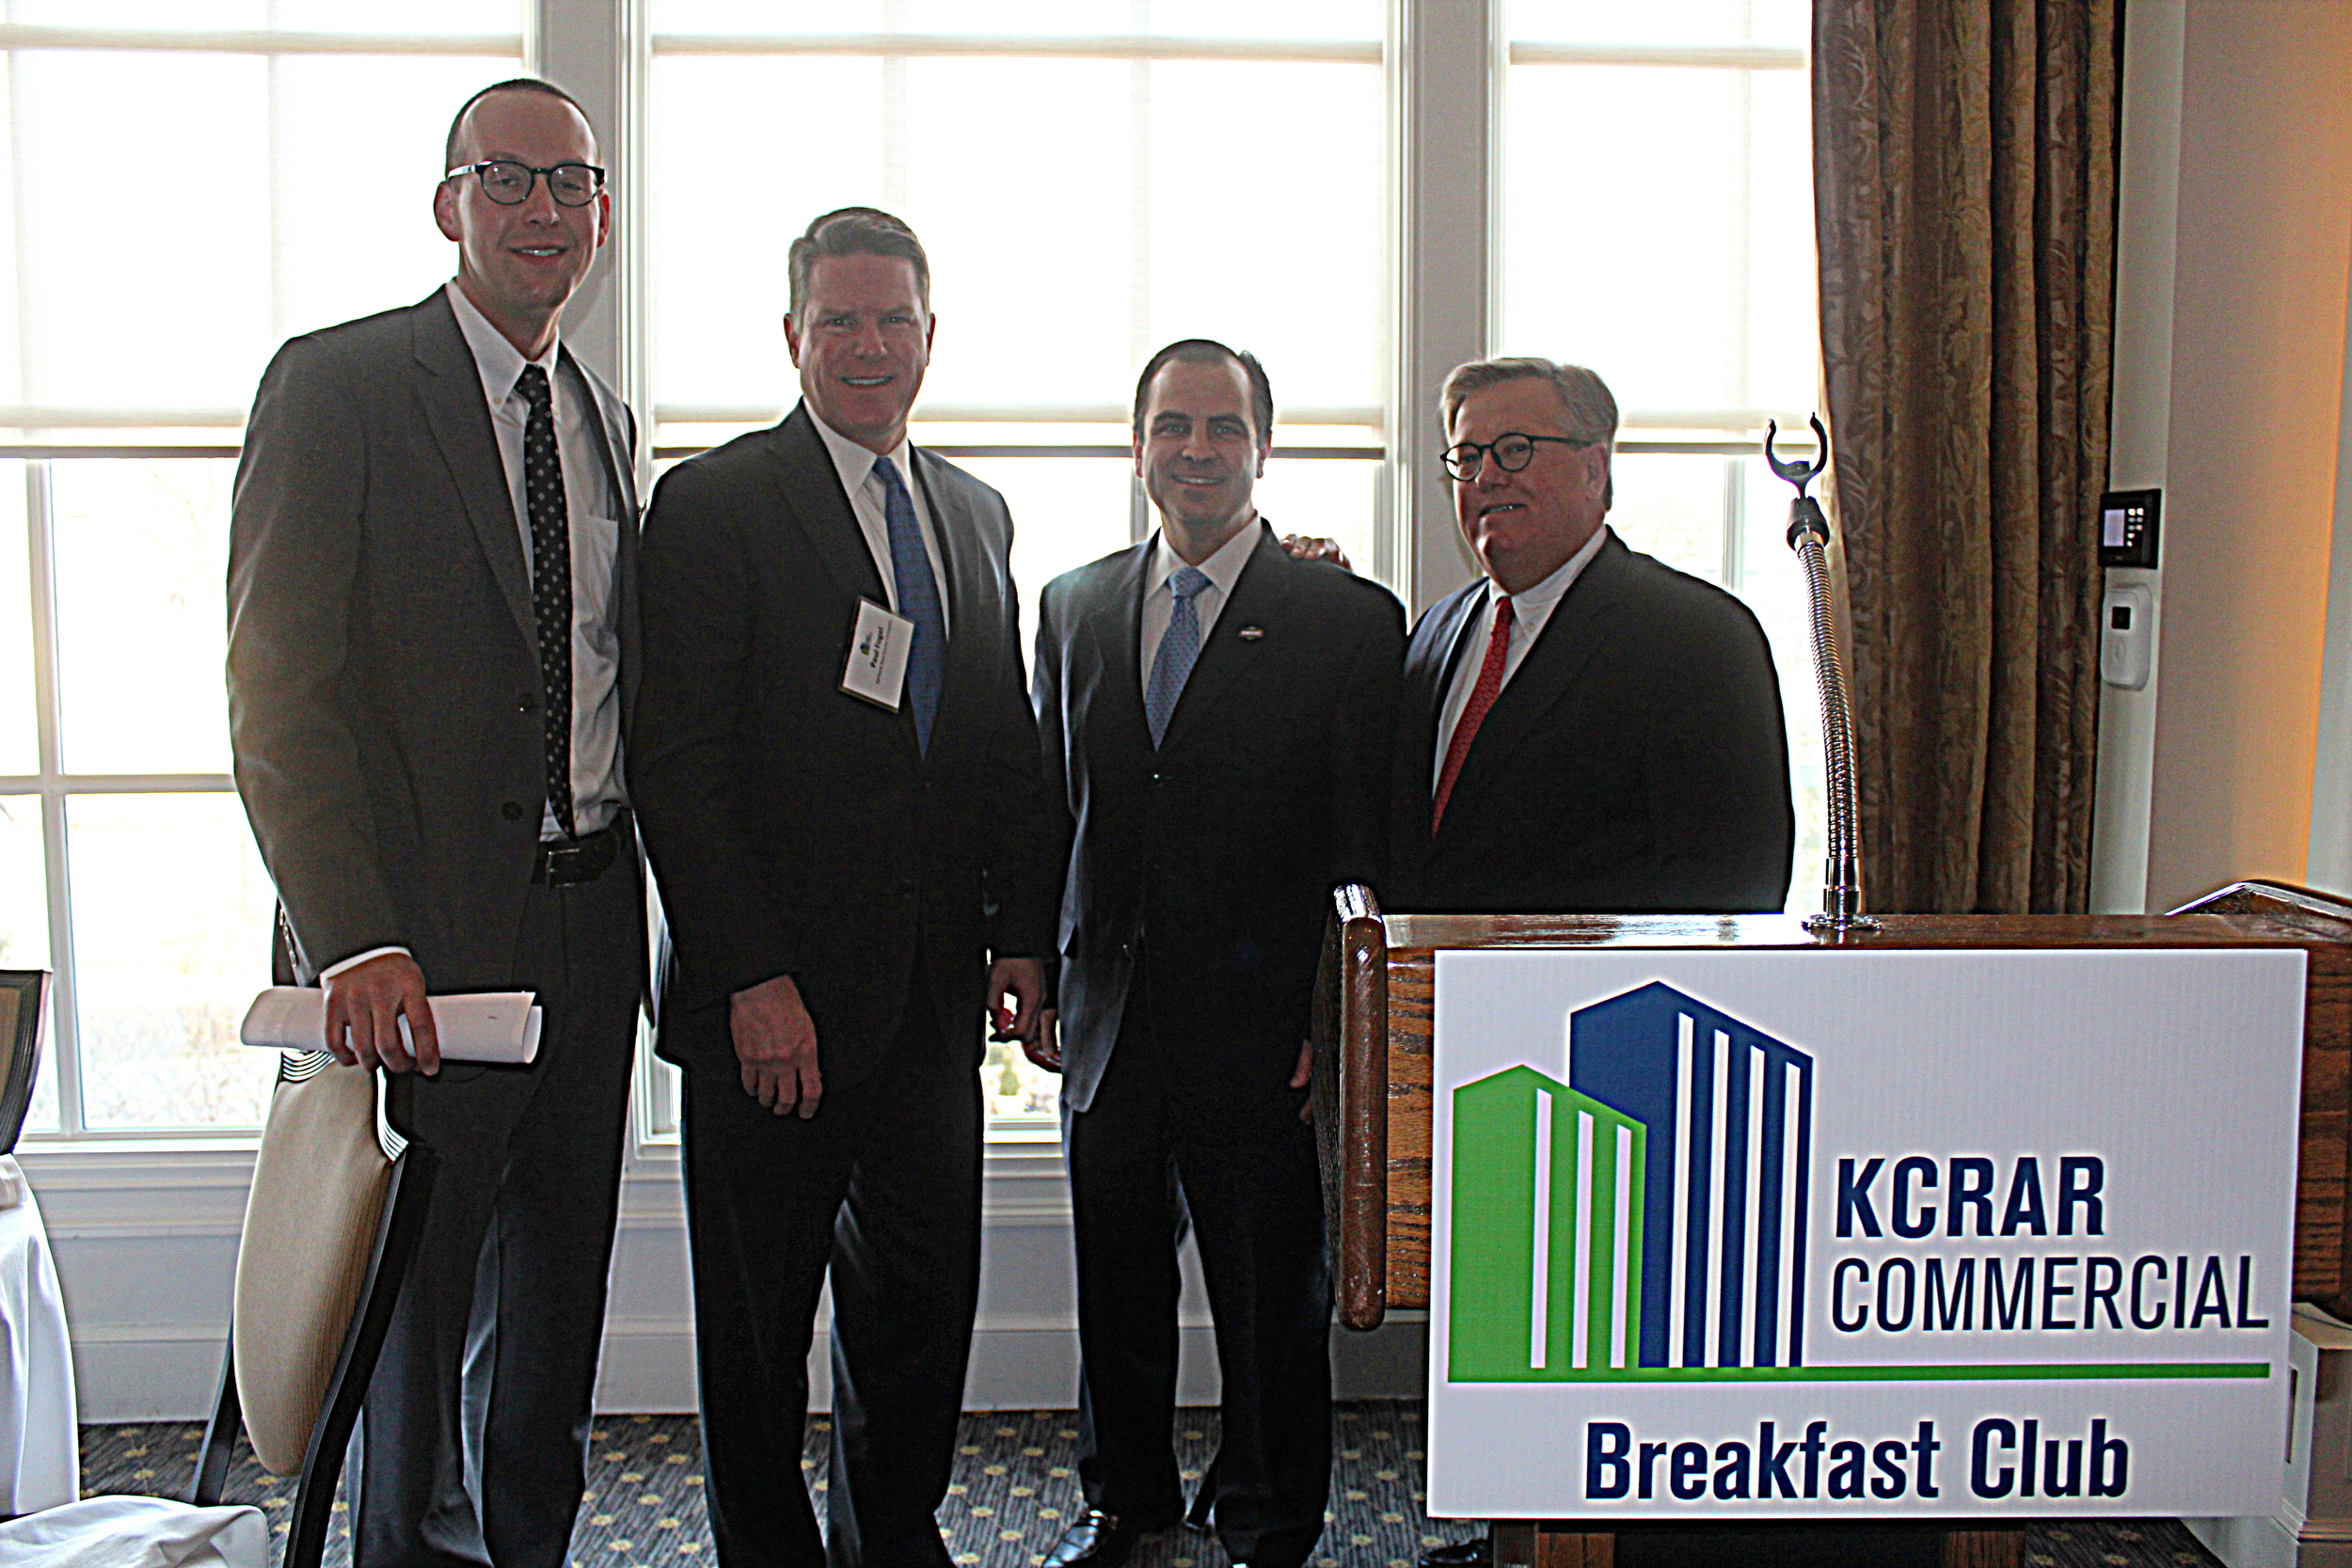 Phil Algrim of JLL, Paul Fogel of Karbank, Mike Bell of Hunt Midwest, and Whitney Kerr Jr. of DTZ.